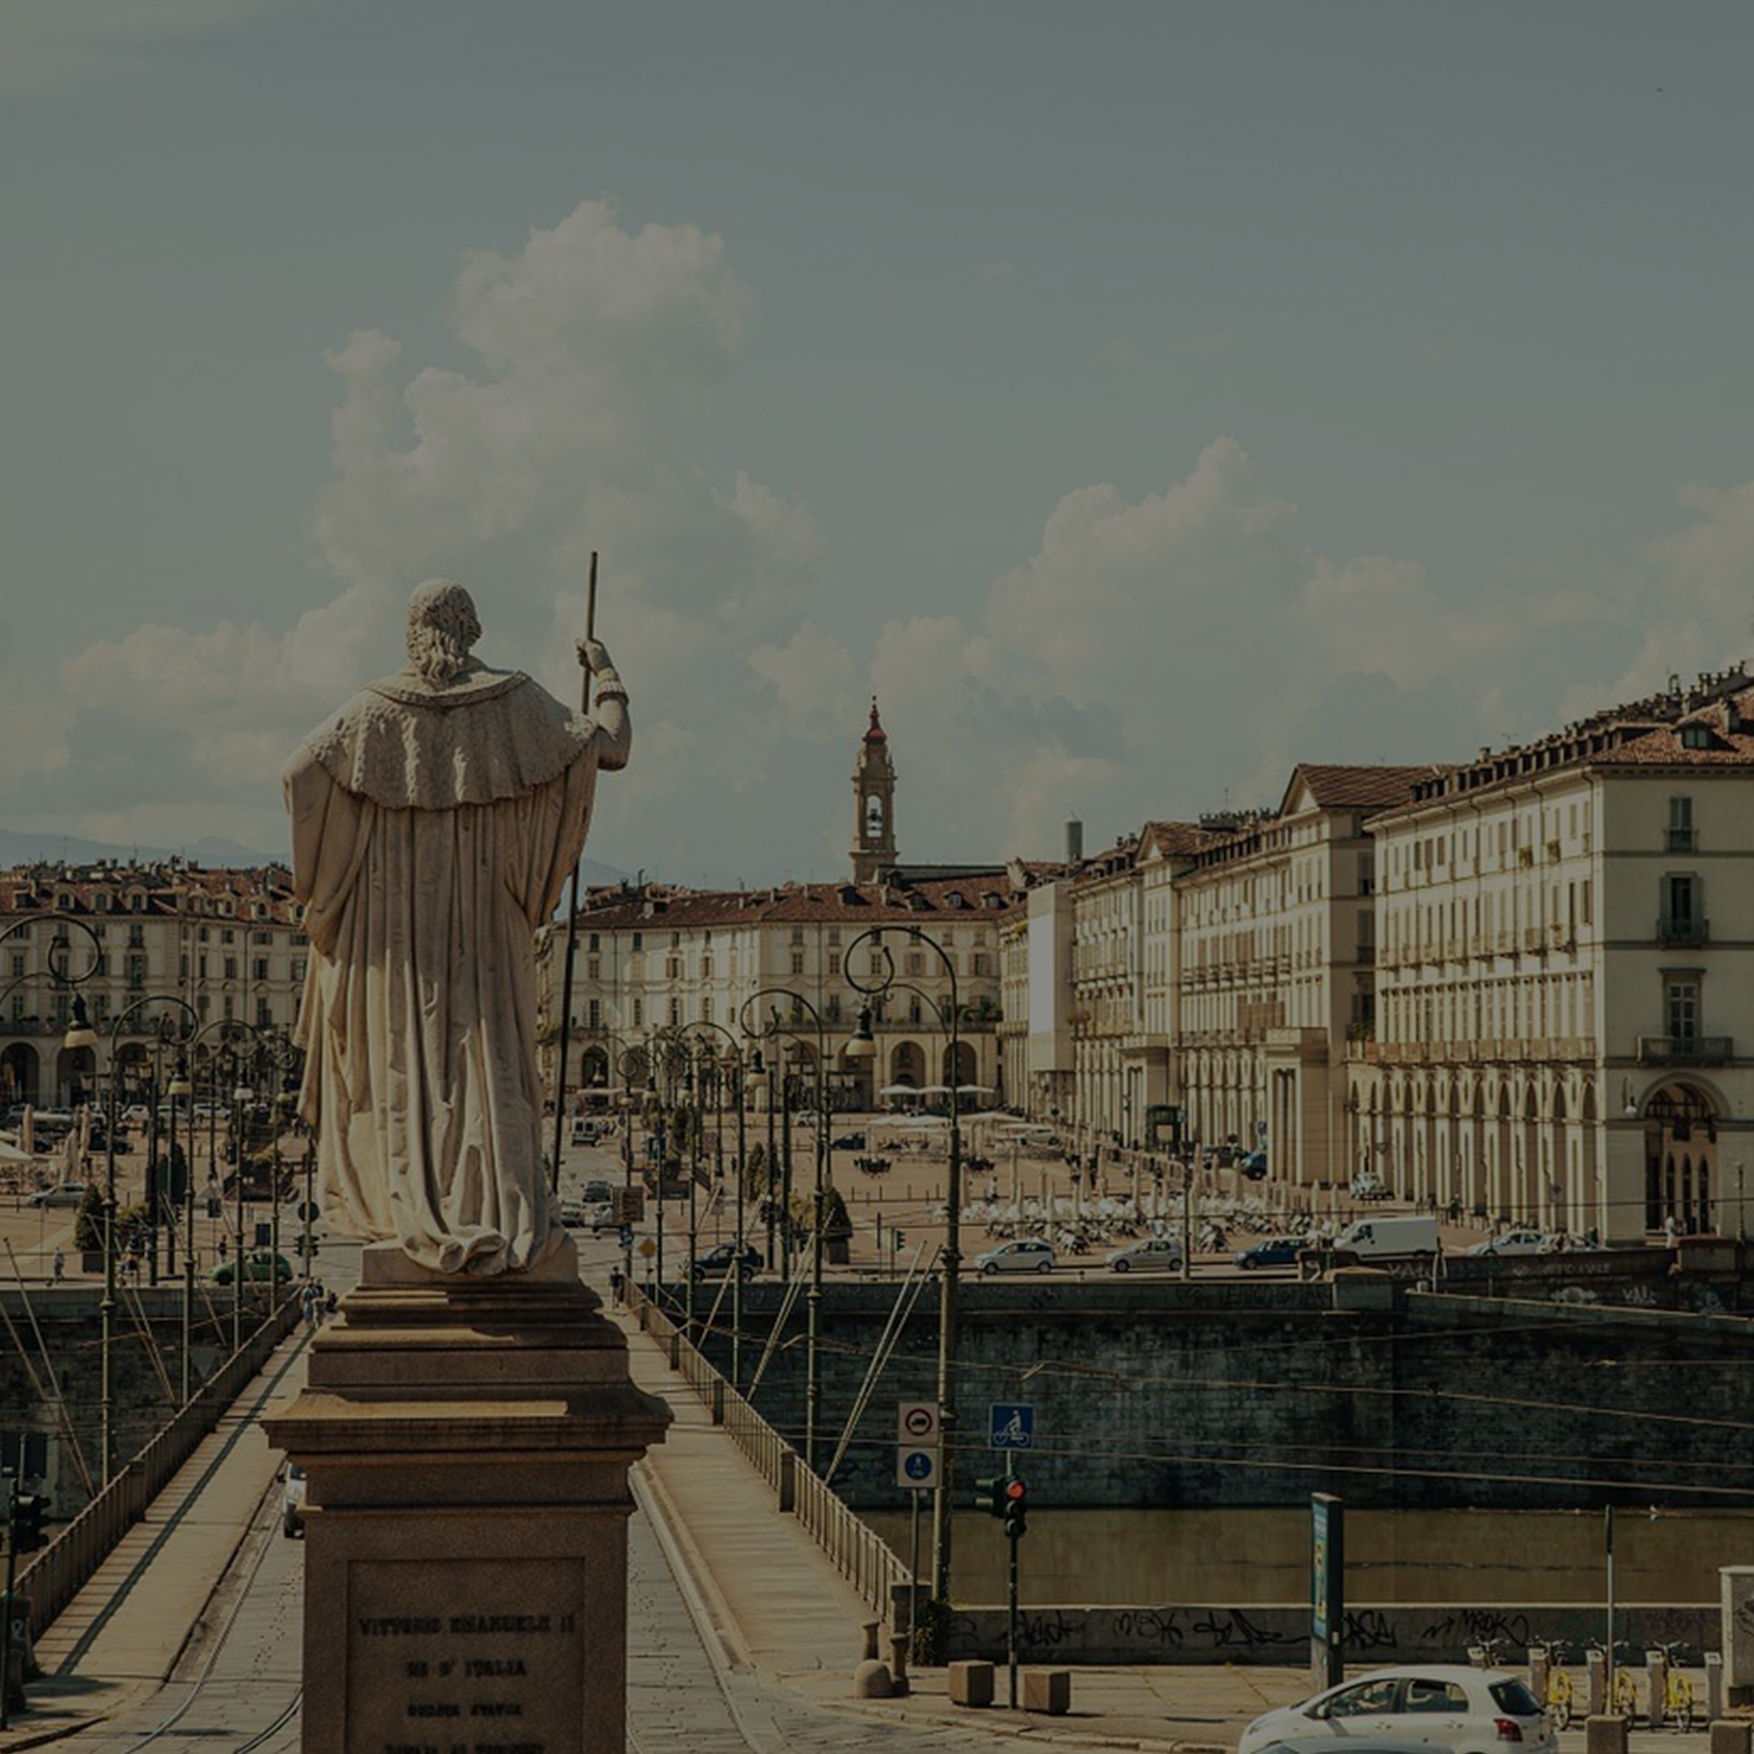 Turin - The city of Magic